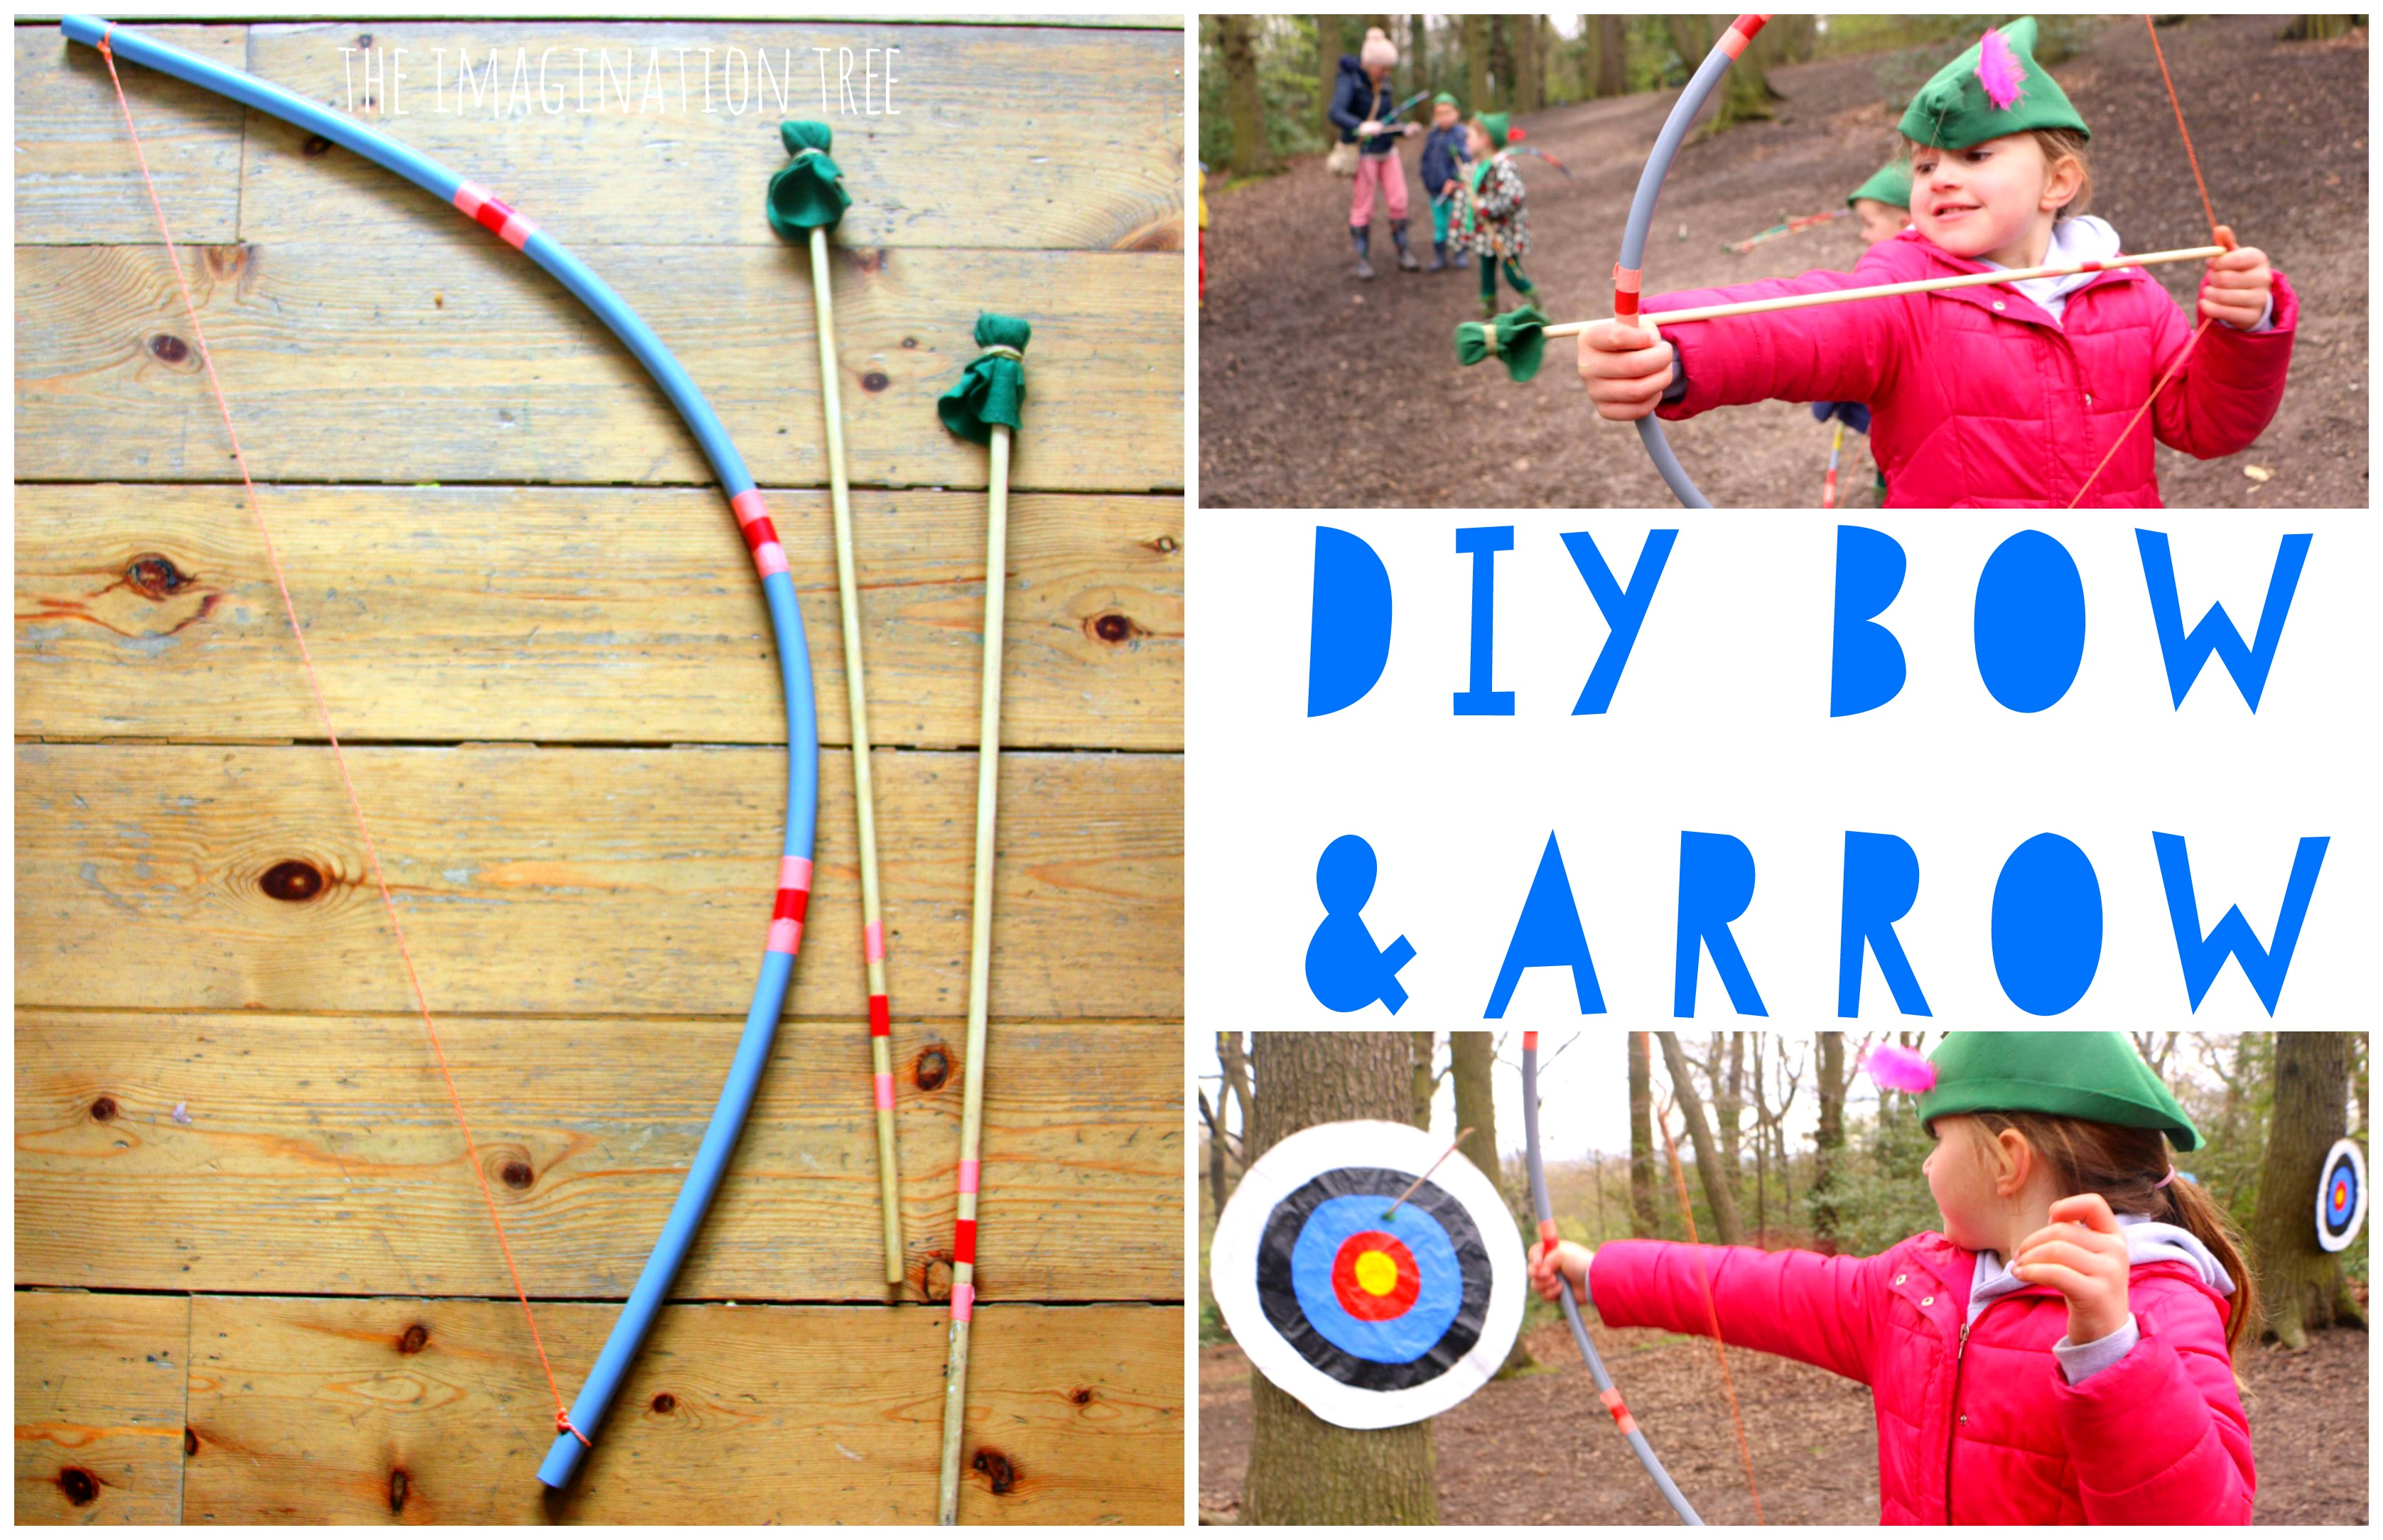 DIY Bow and Arrow for Kids! - The